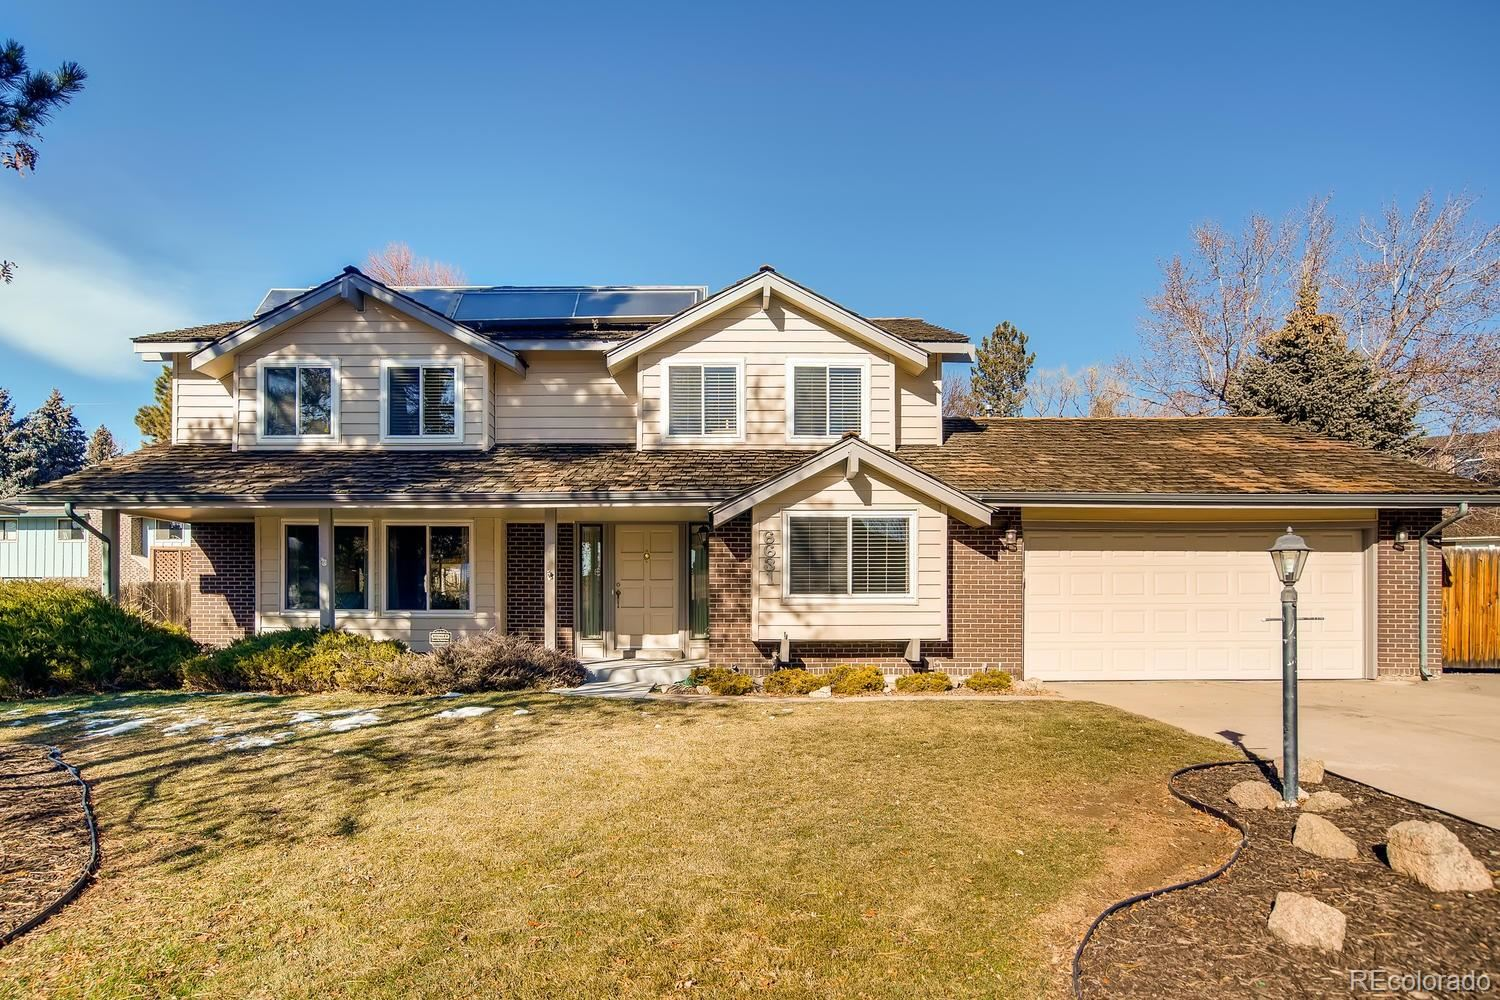 6631 E Euclid Place, Centennial, CO 80111 - #: 9245491